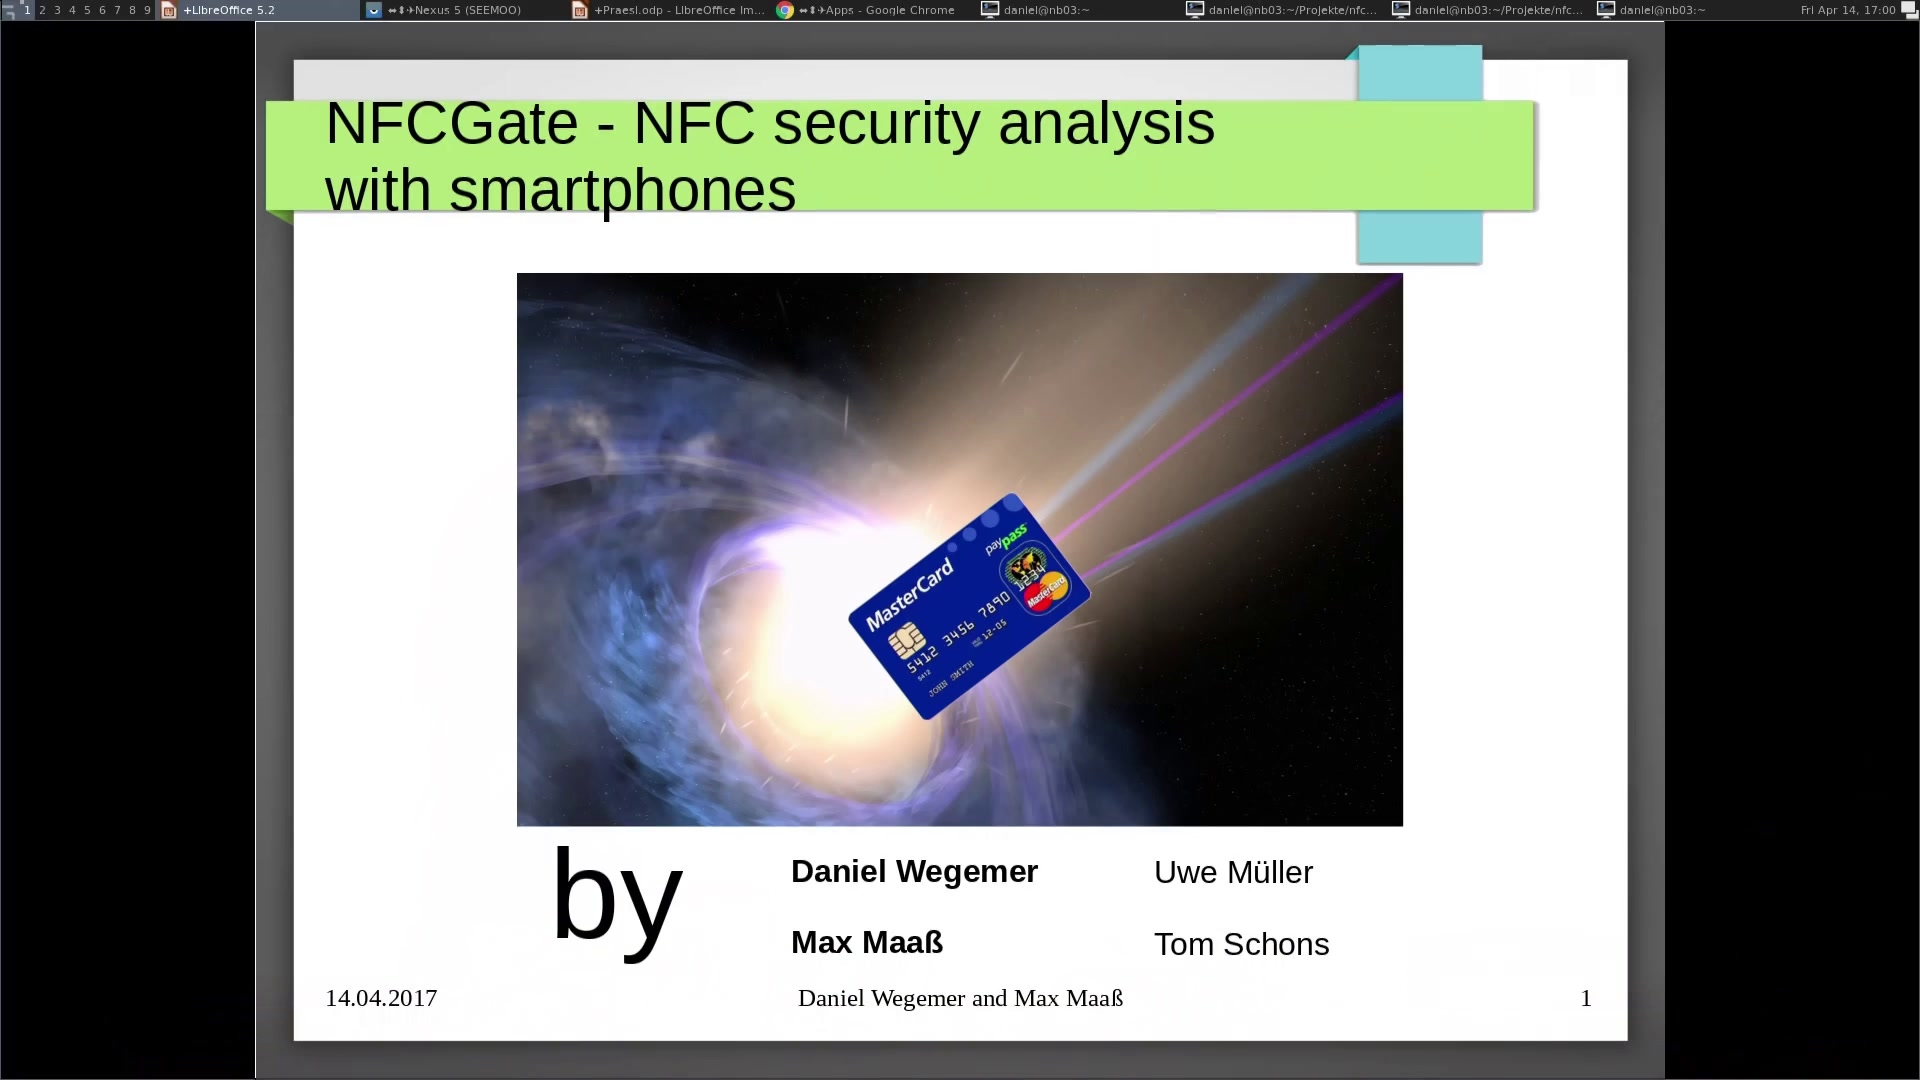 media ccc de - NFCGate - NFC security analysis with smartphones